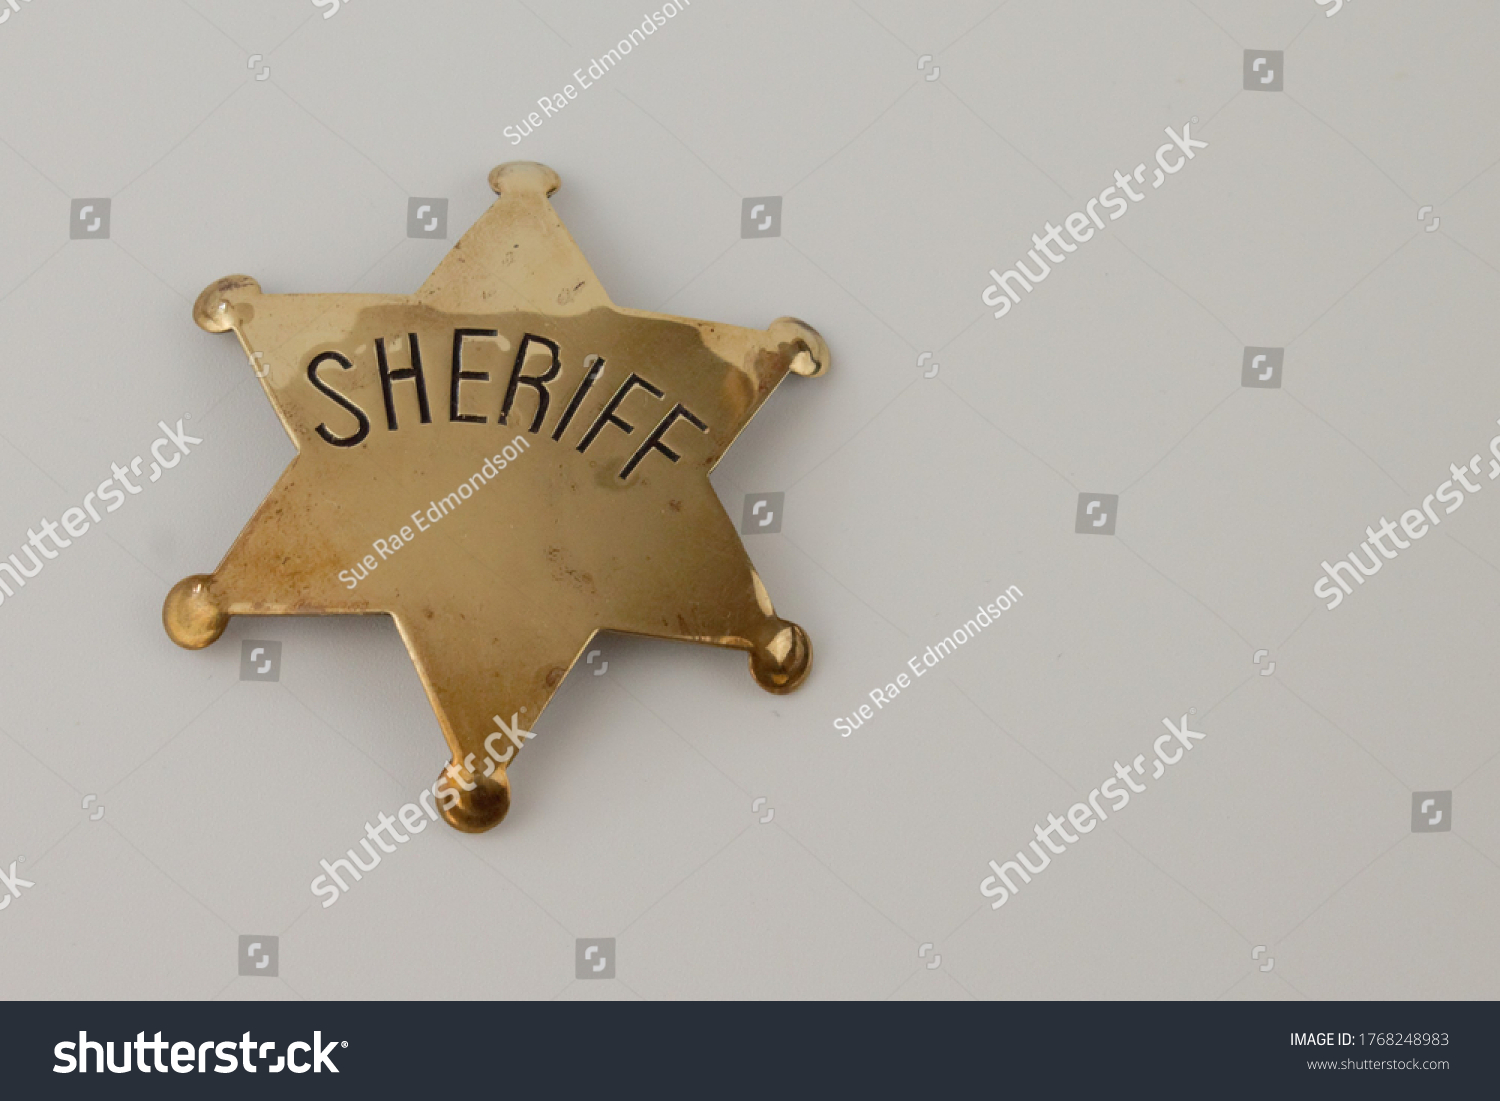 Upholland, Lancashire, UK, 02/07/2020: Brass sheriff's badge on a white background with copy space to the right